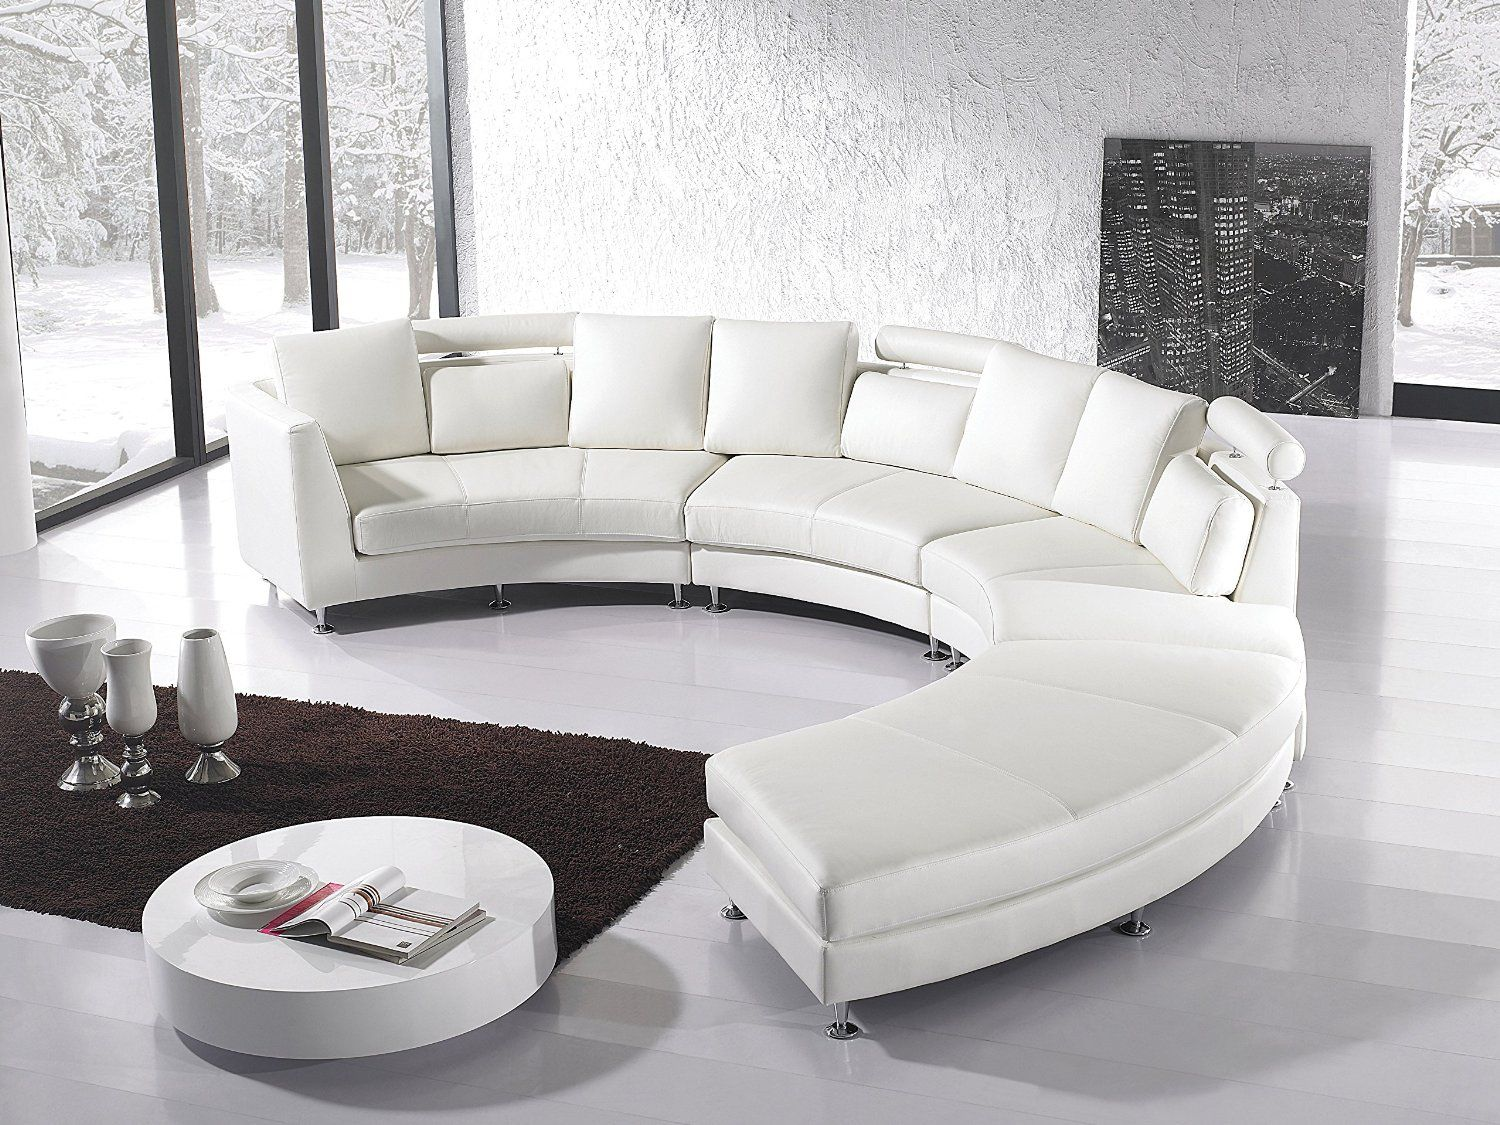 Round Sectional Sofa White Http Makerland Org How To Arrange  ~ Living Room Arrangements With Sectional Sofa